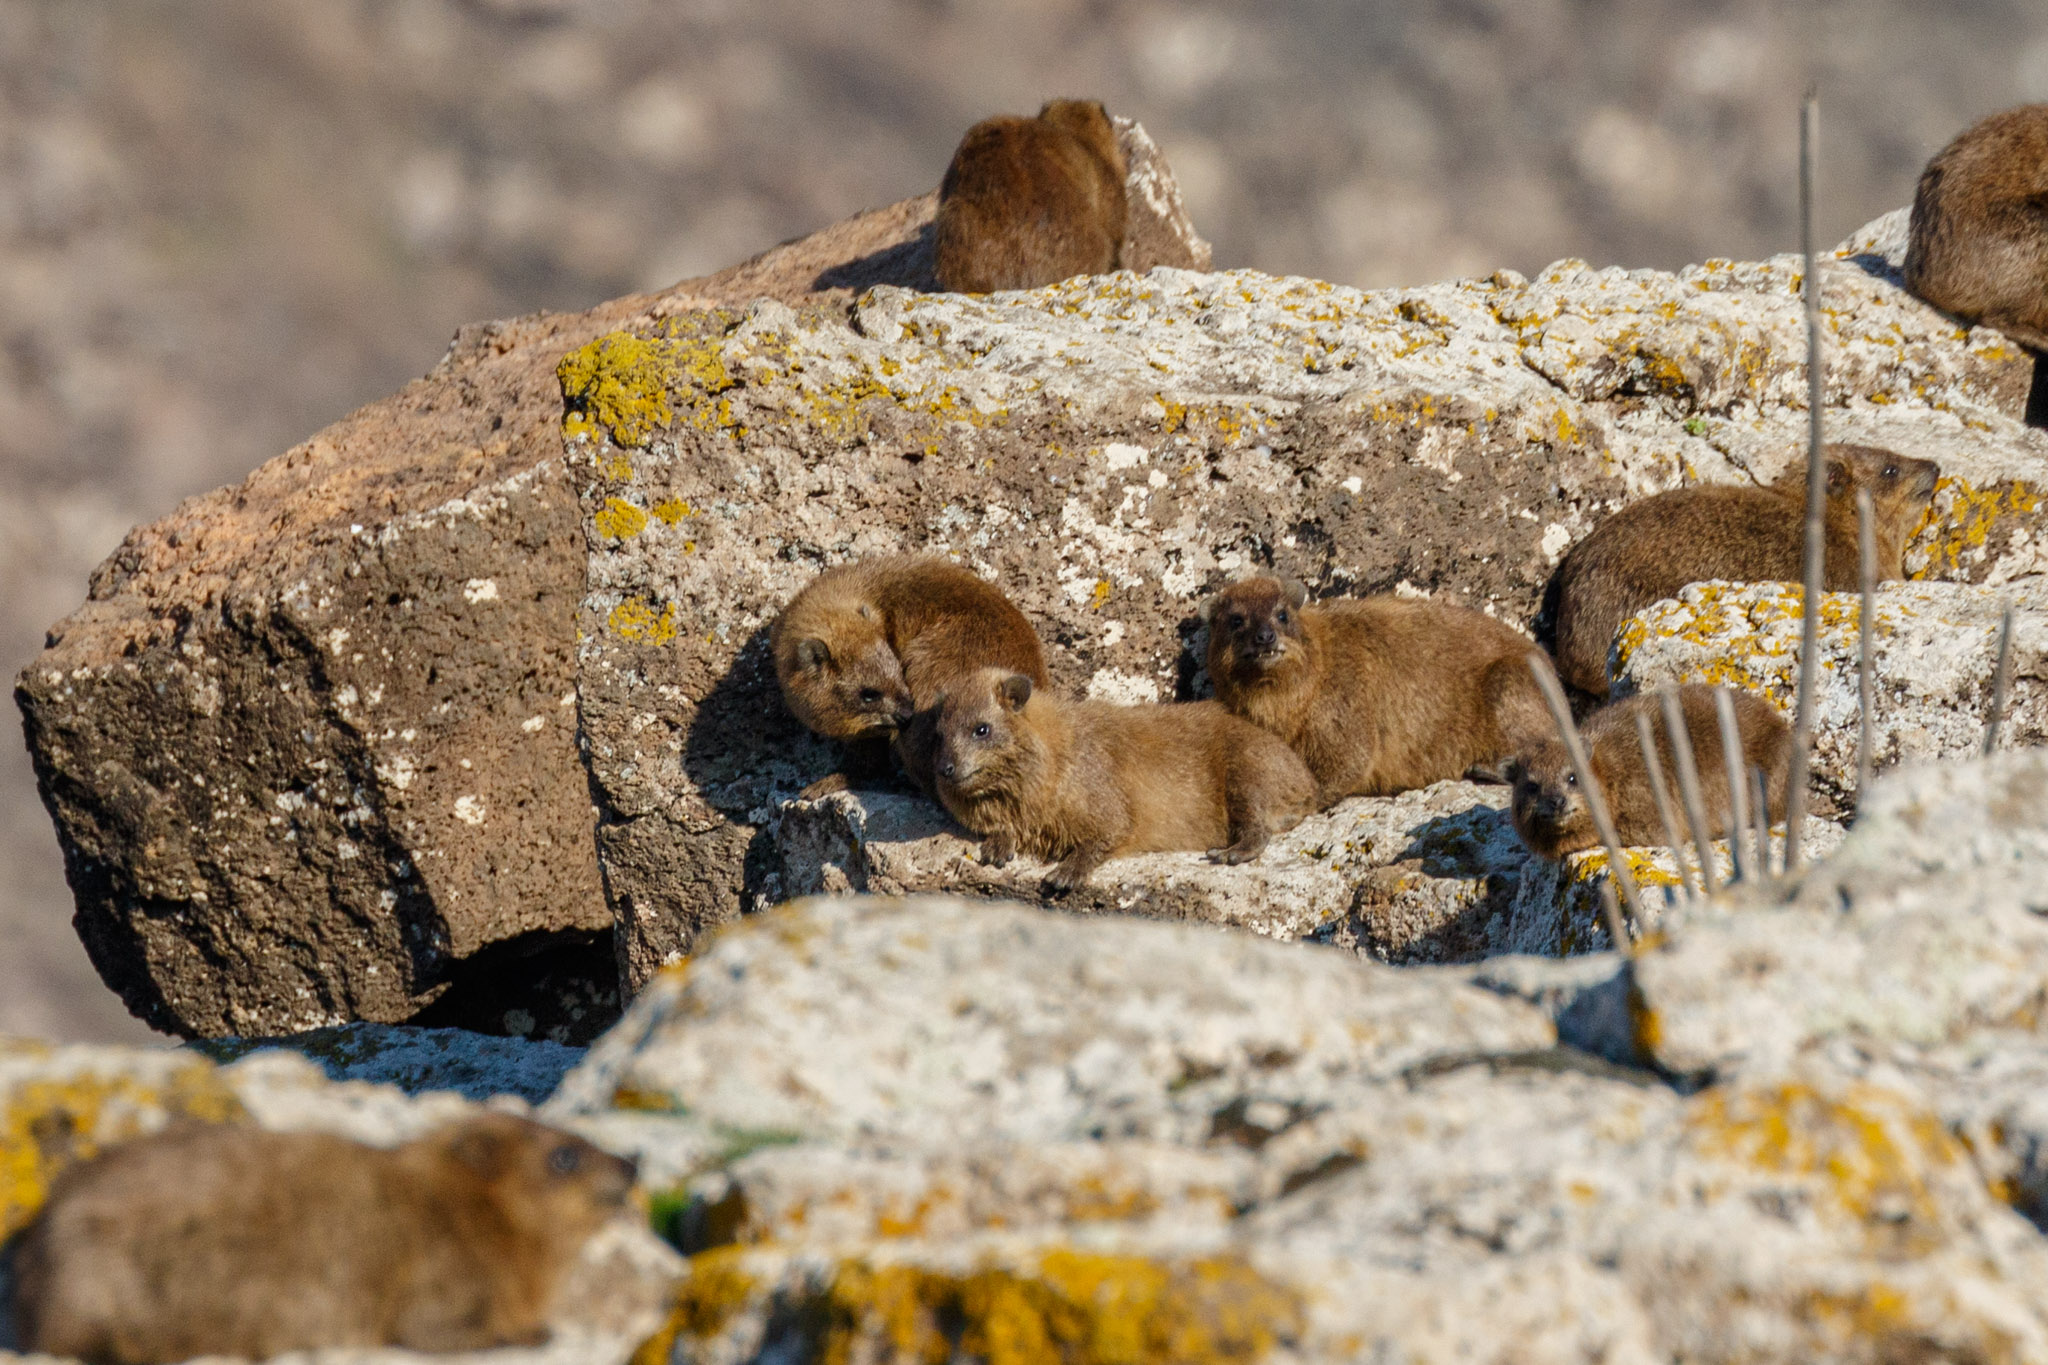 Rock hyrax bathing in the sun